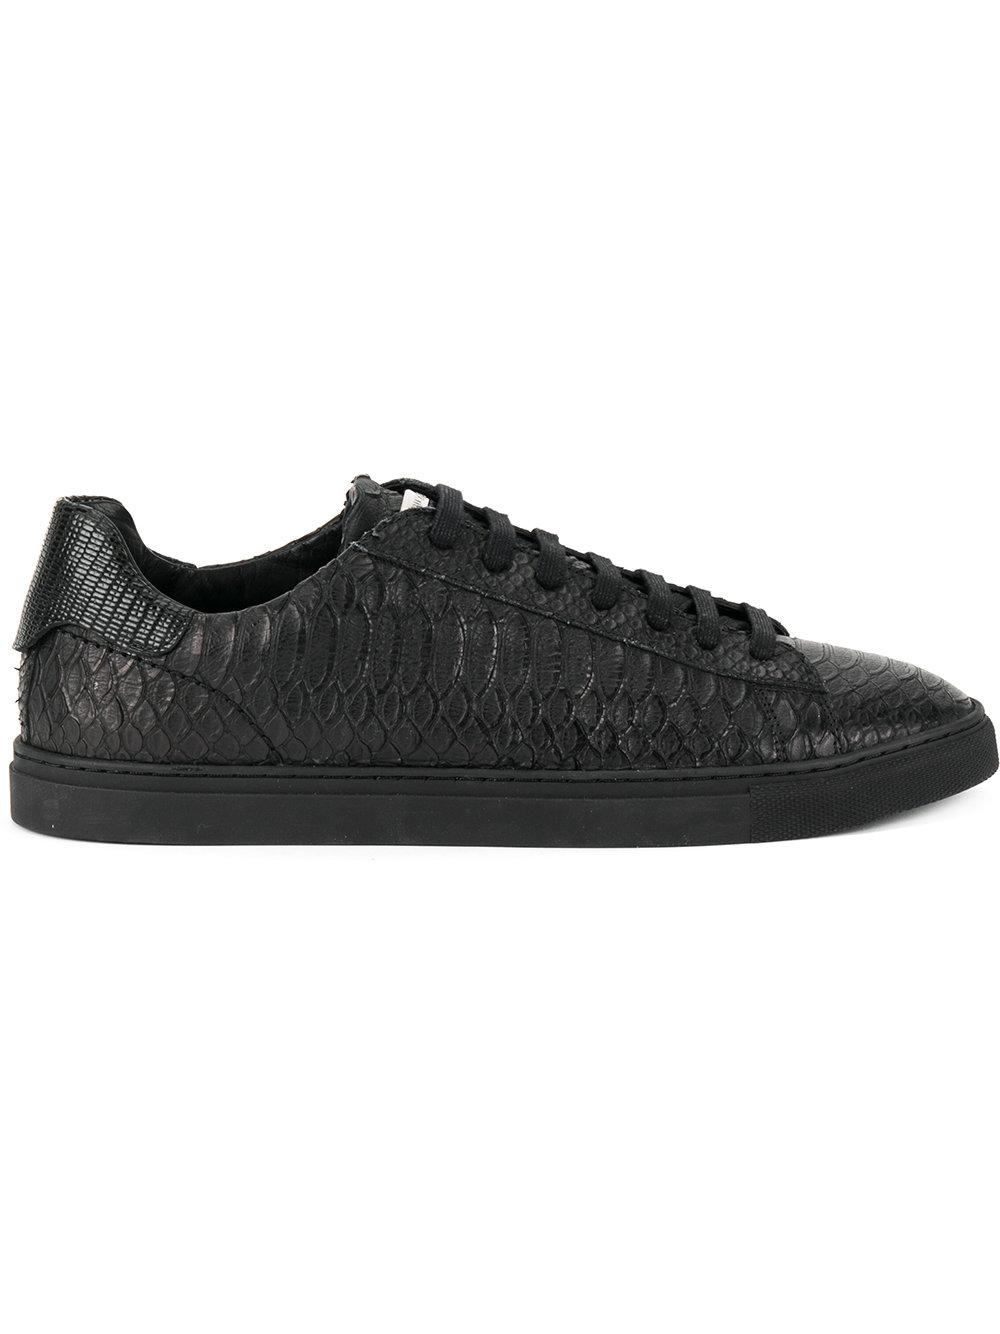 2410084403 Dsquared2 Snakeskin Effect Embossed Sneakers - Black